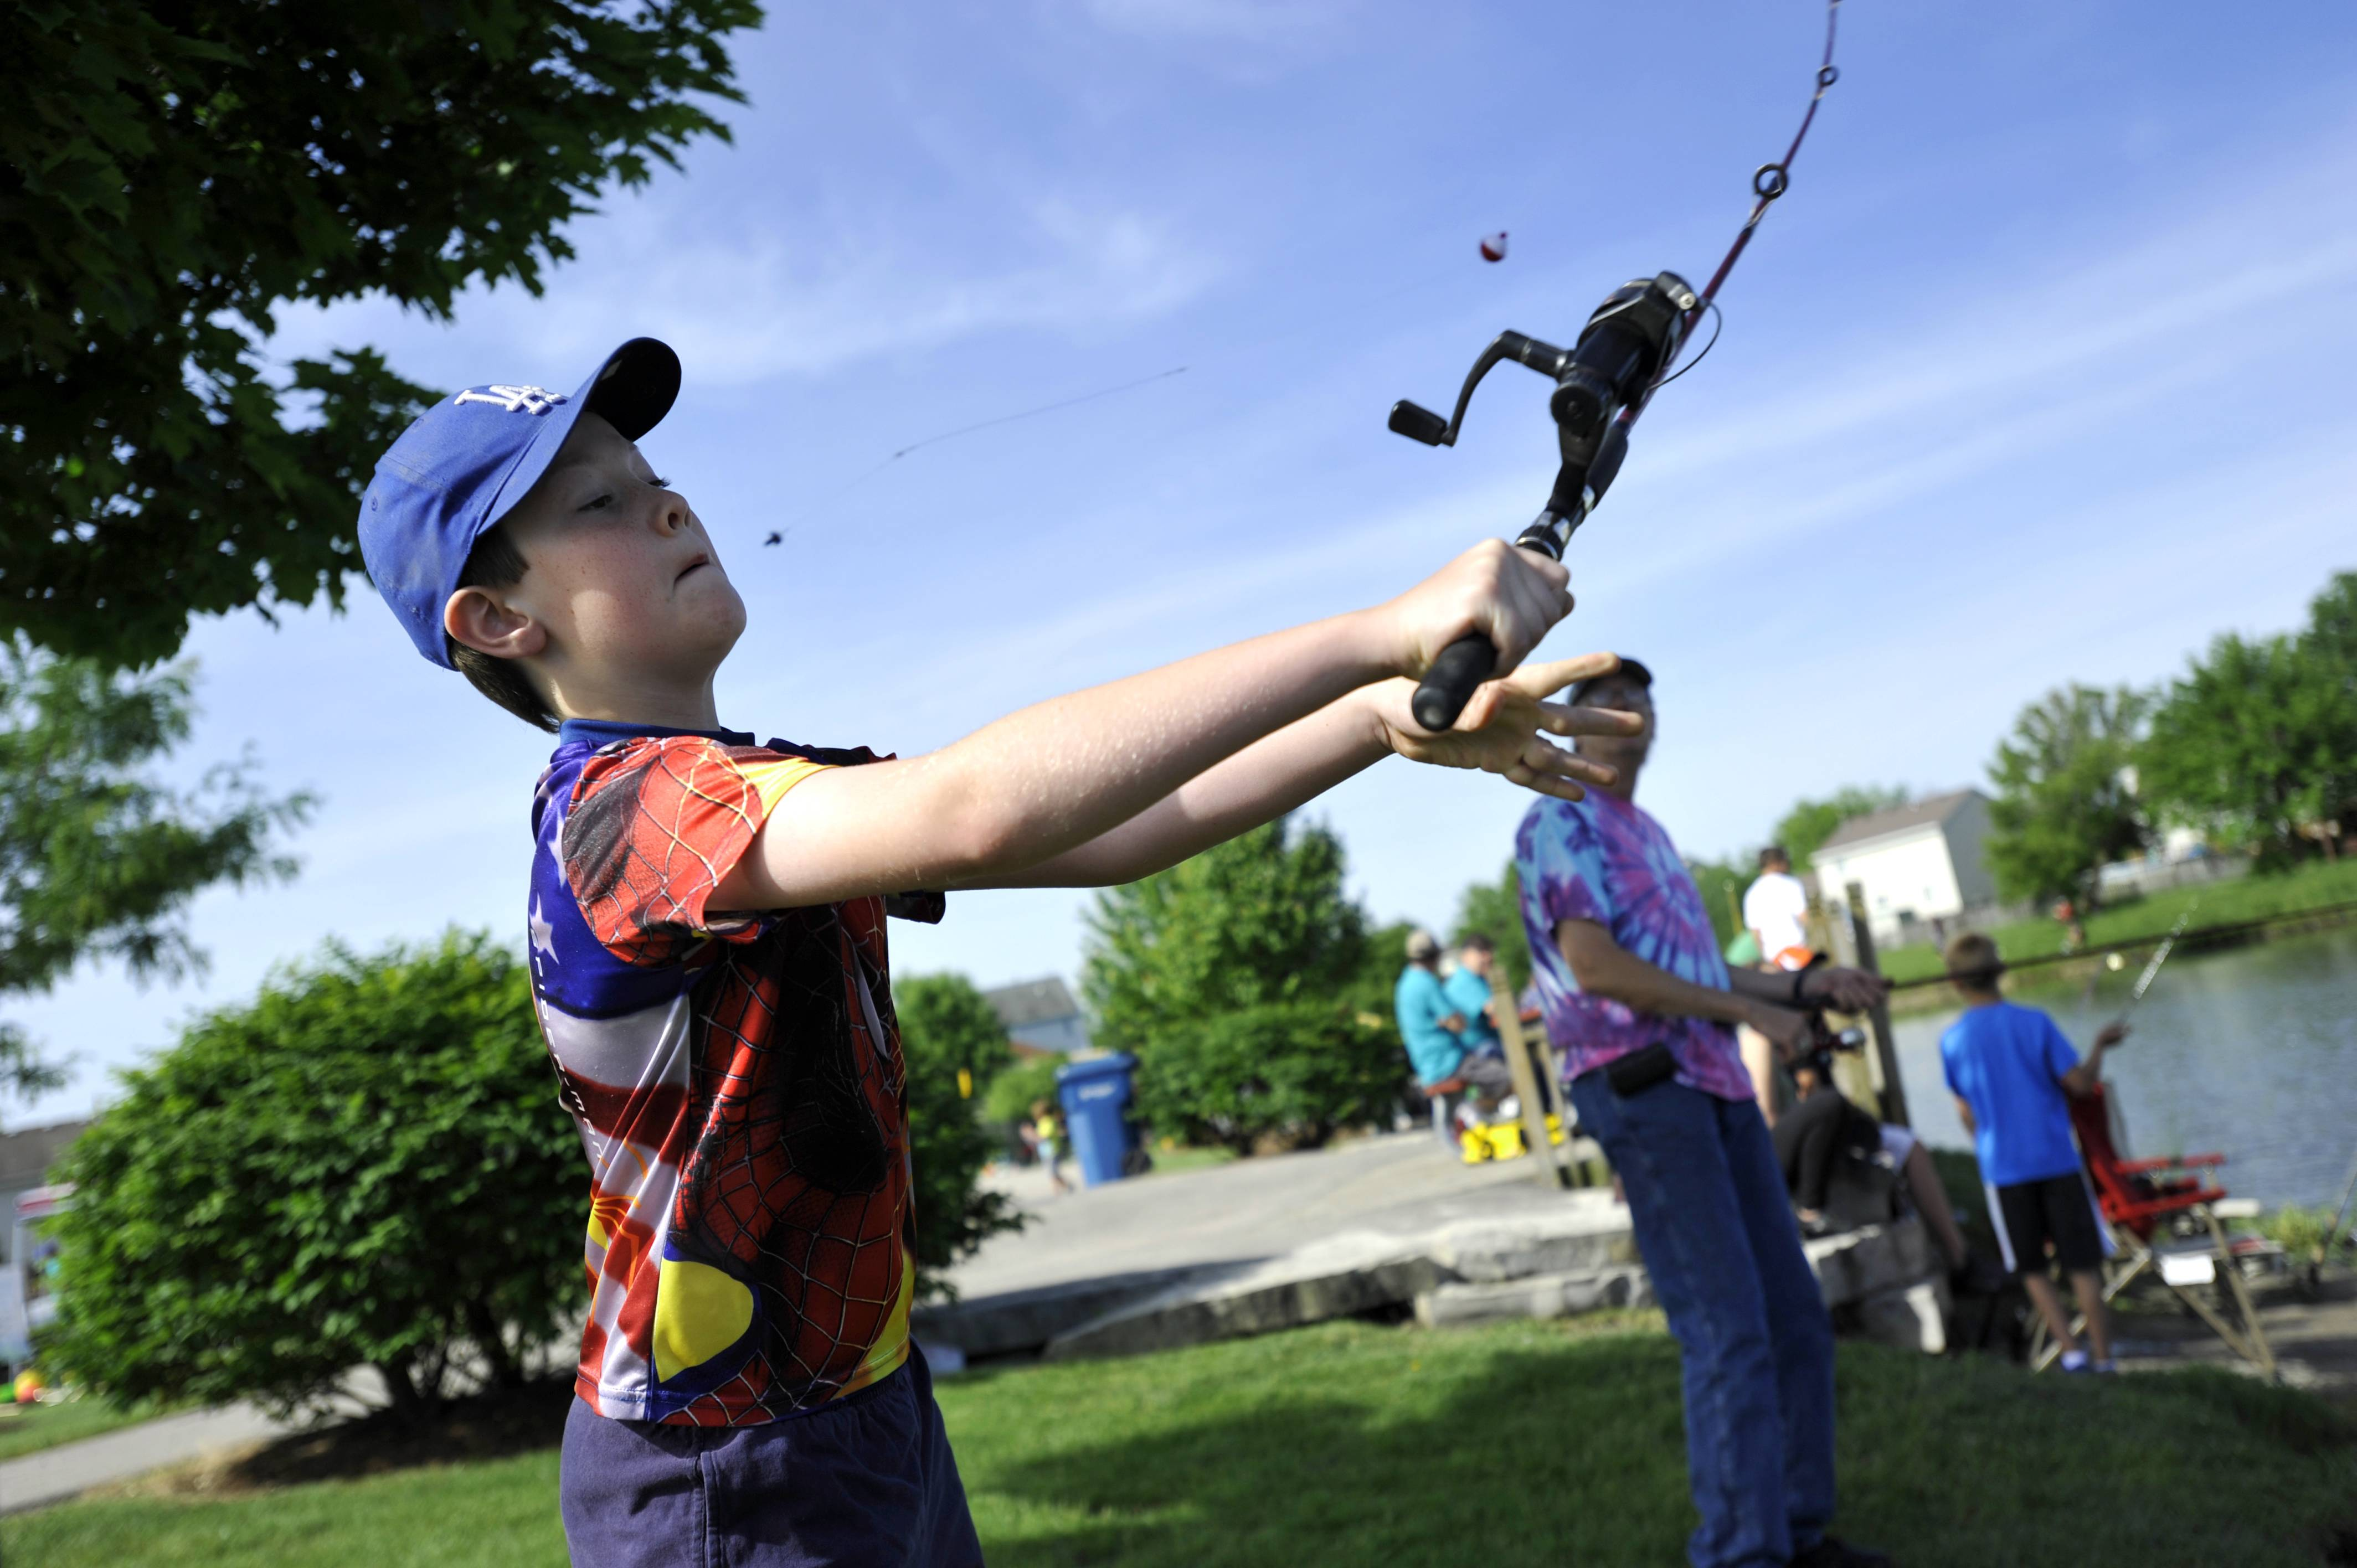 Gavin Johnson, 9, of South Elgin casts his line as his father Scott watches on at the annual Tuna Kahuna Fishing Derby in Blackhawk Park in South Elgin on Saturday. Johnson's grandfathers were both avid fisherman in San Diego and Scott enjoys taking his son fishing on Father's Day weekend.